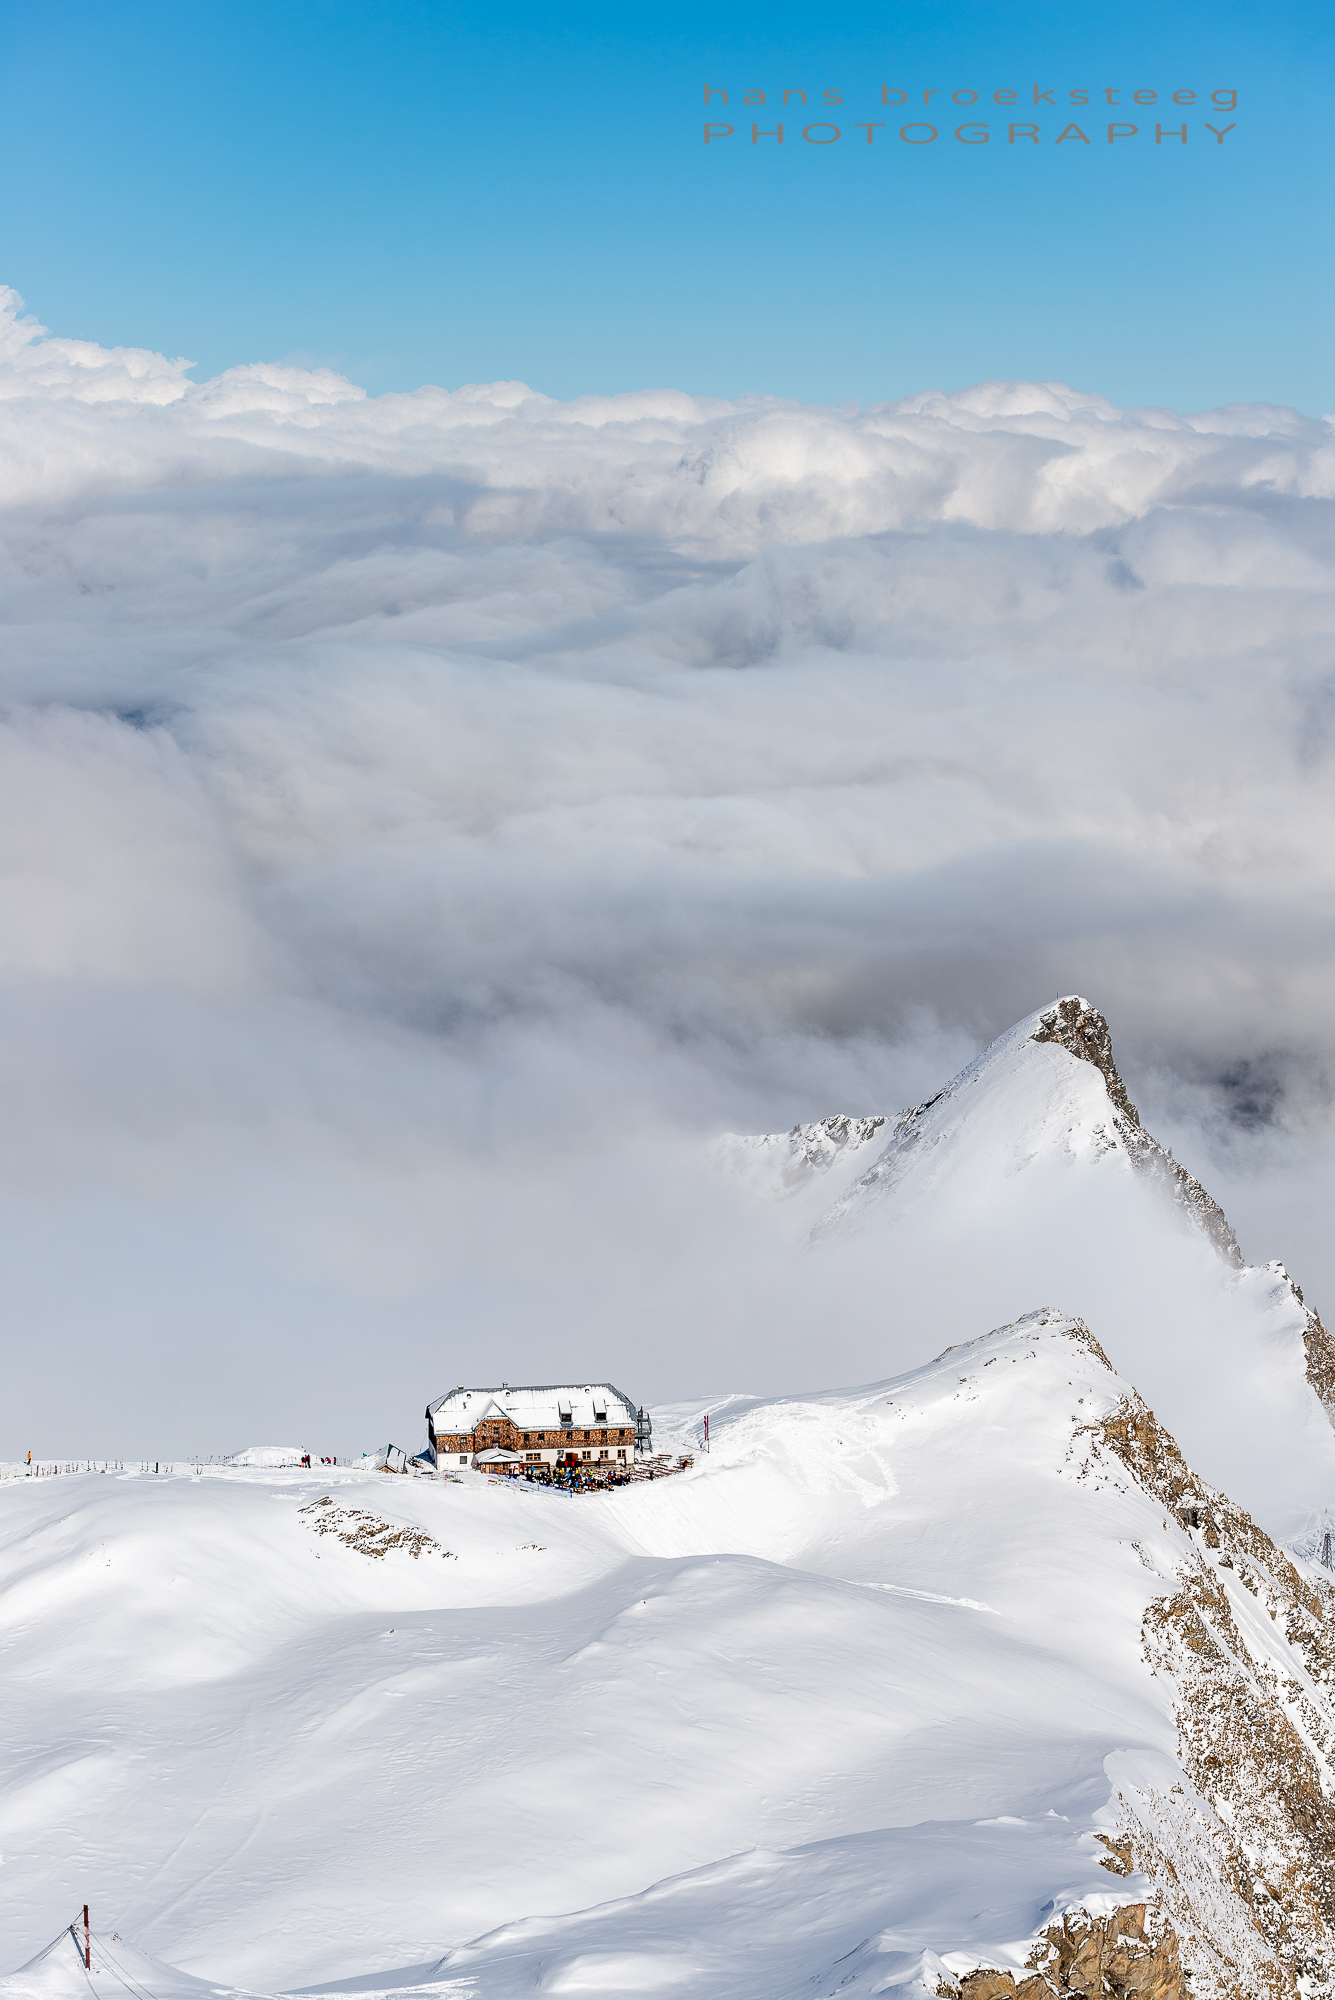 Austrian Alps winter view with cloud inversion